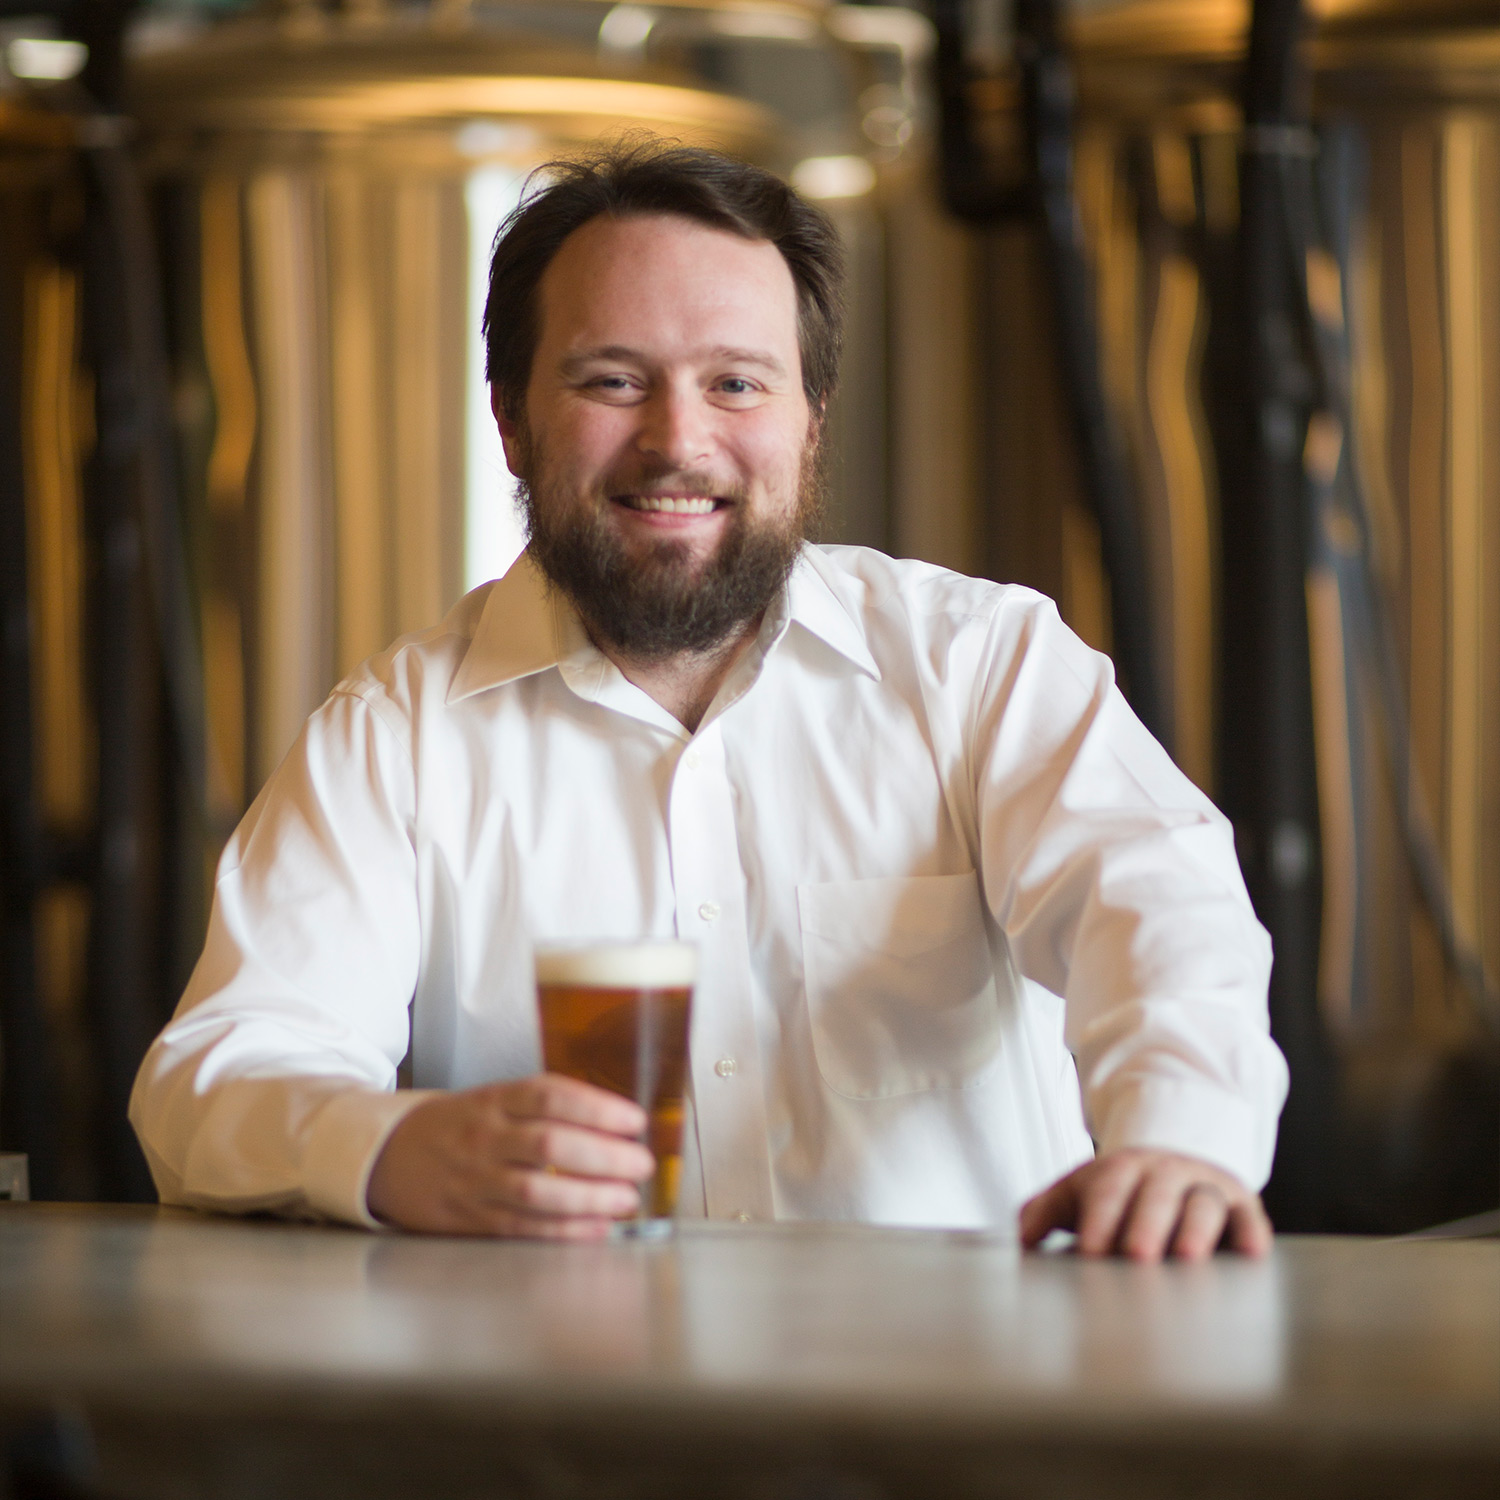 Ben Self,Brewmaster Extraordinaire - With a degree in chemical engineering from the University of Alabama, Ben has a decade of experience working in quality control and production scaling in the beverage industry.